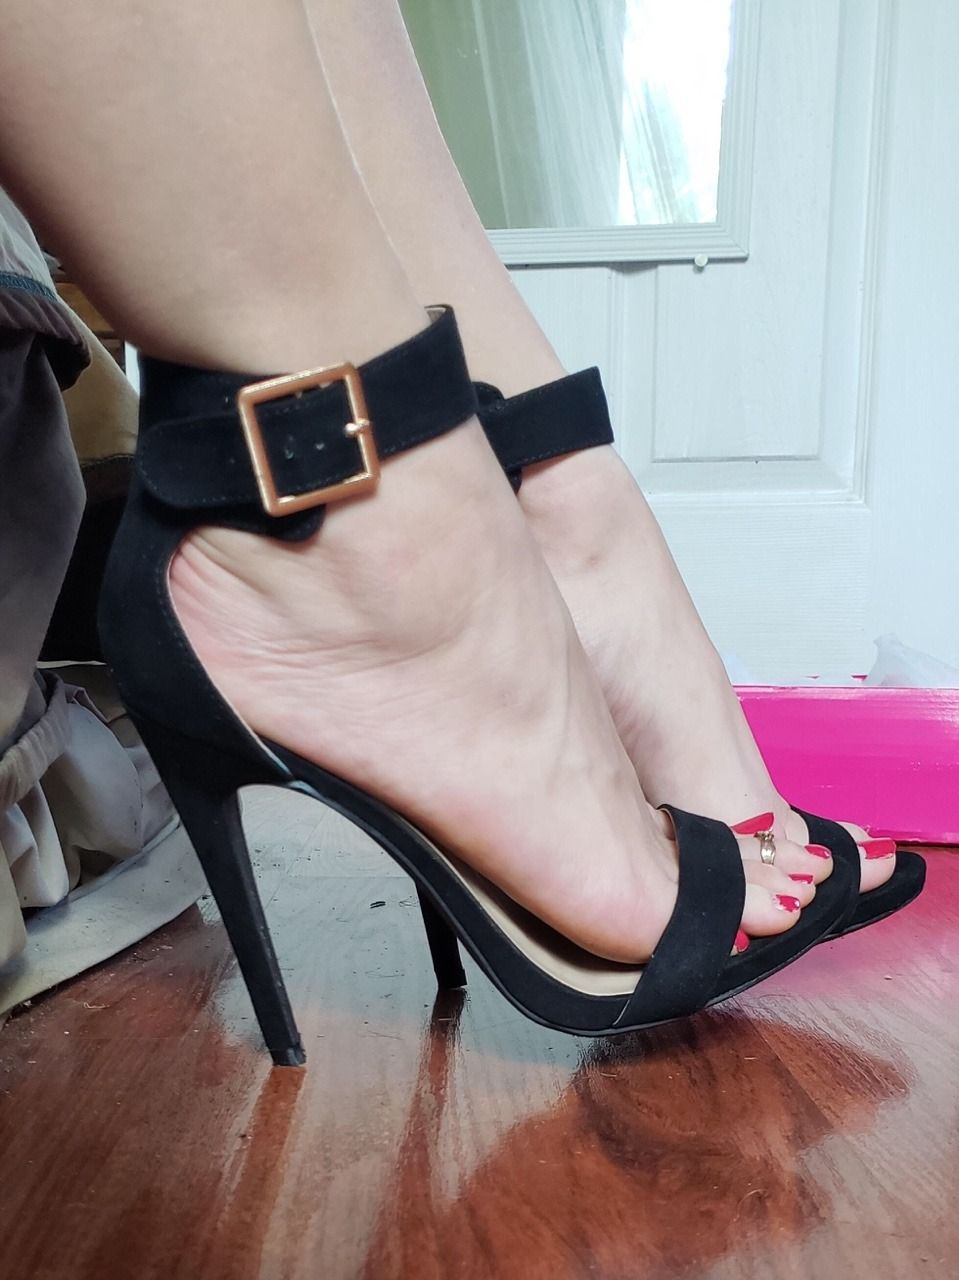 f5c6febc224 Pin by Joe Fire on Pantyhose - Feet - Heels